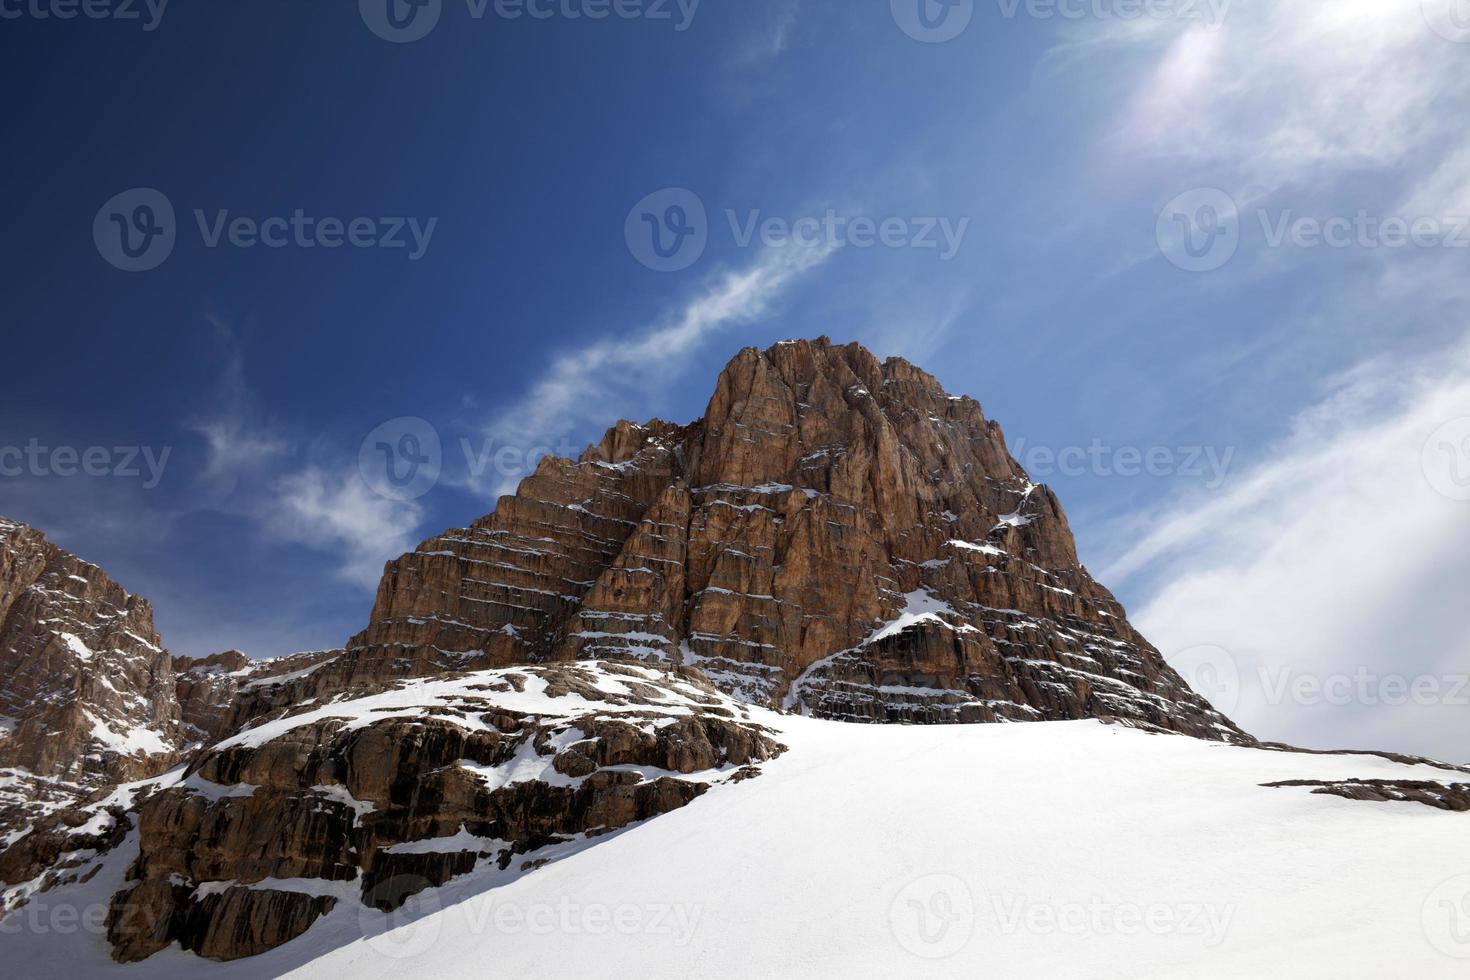 Snowy rocks at nice day photo